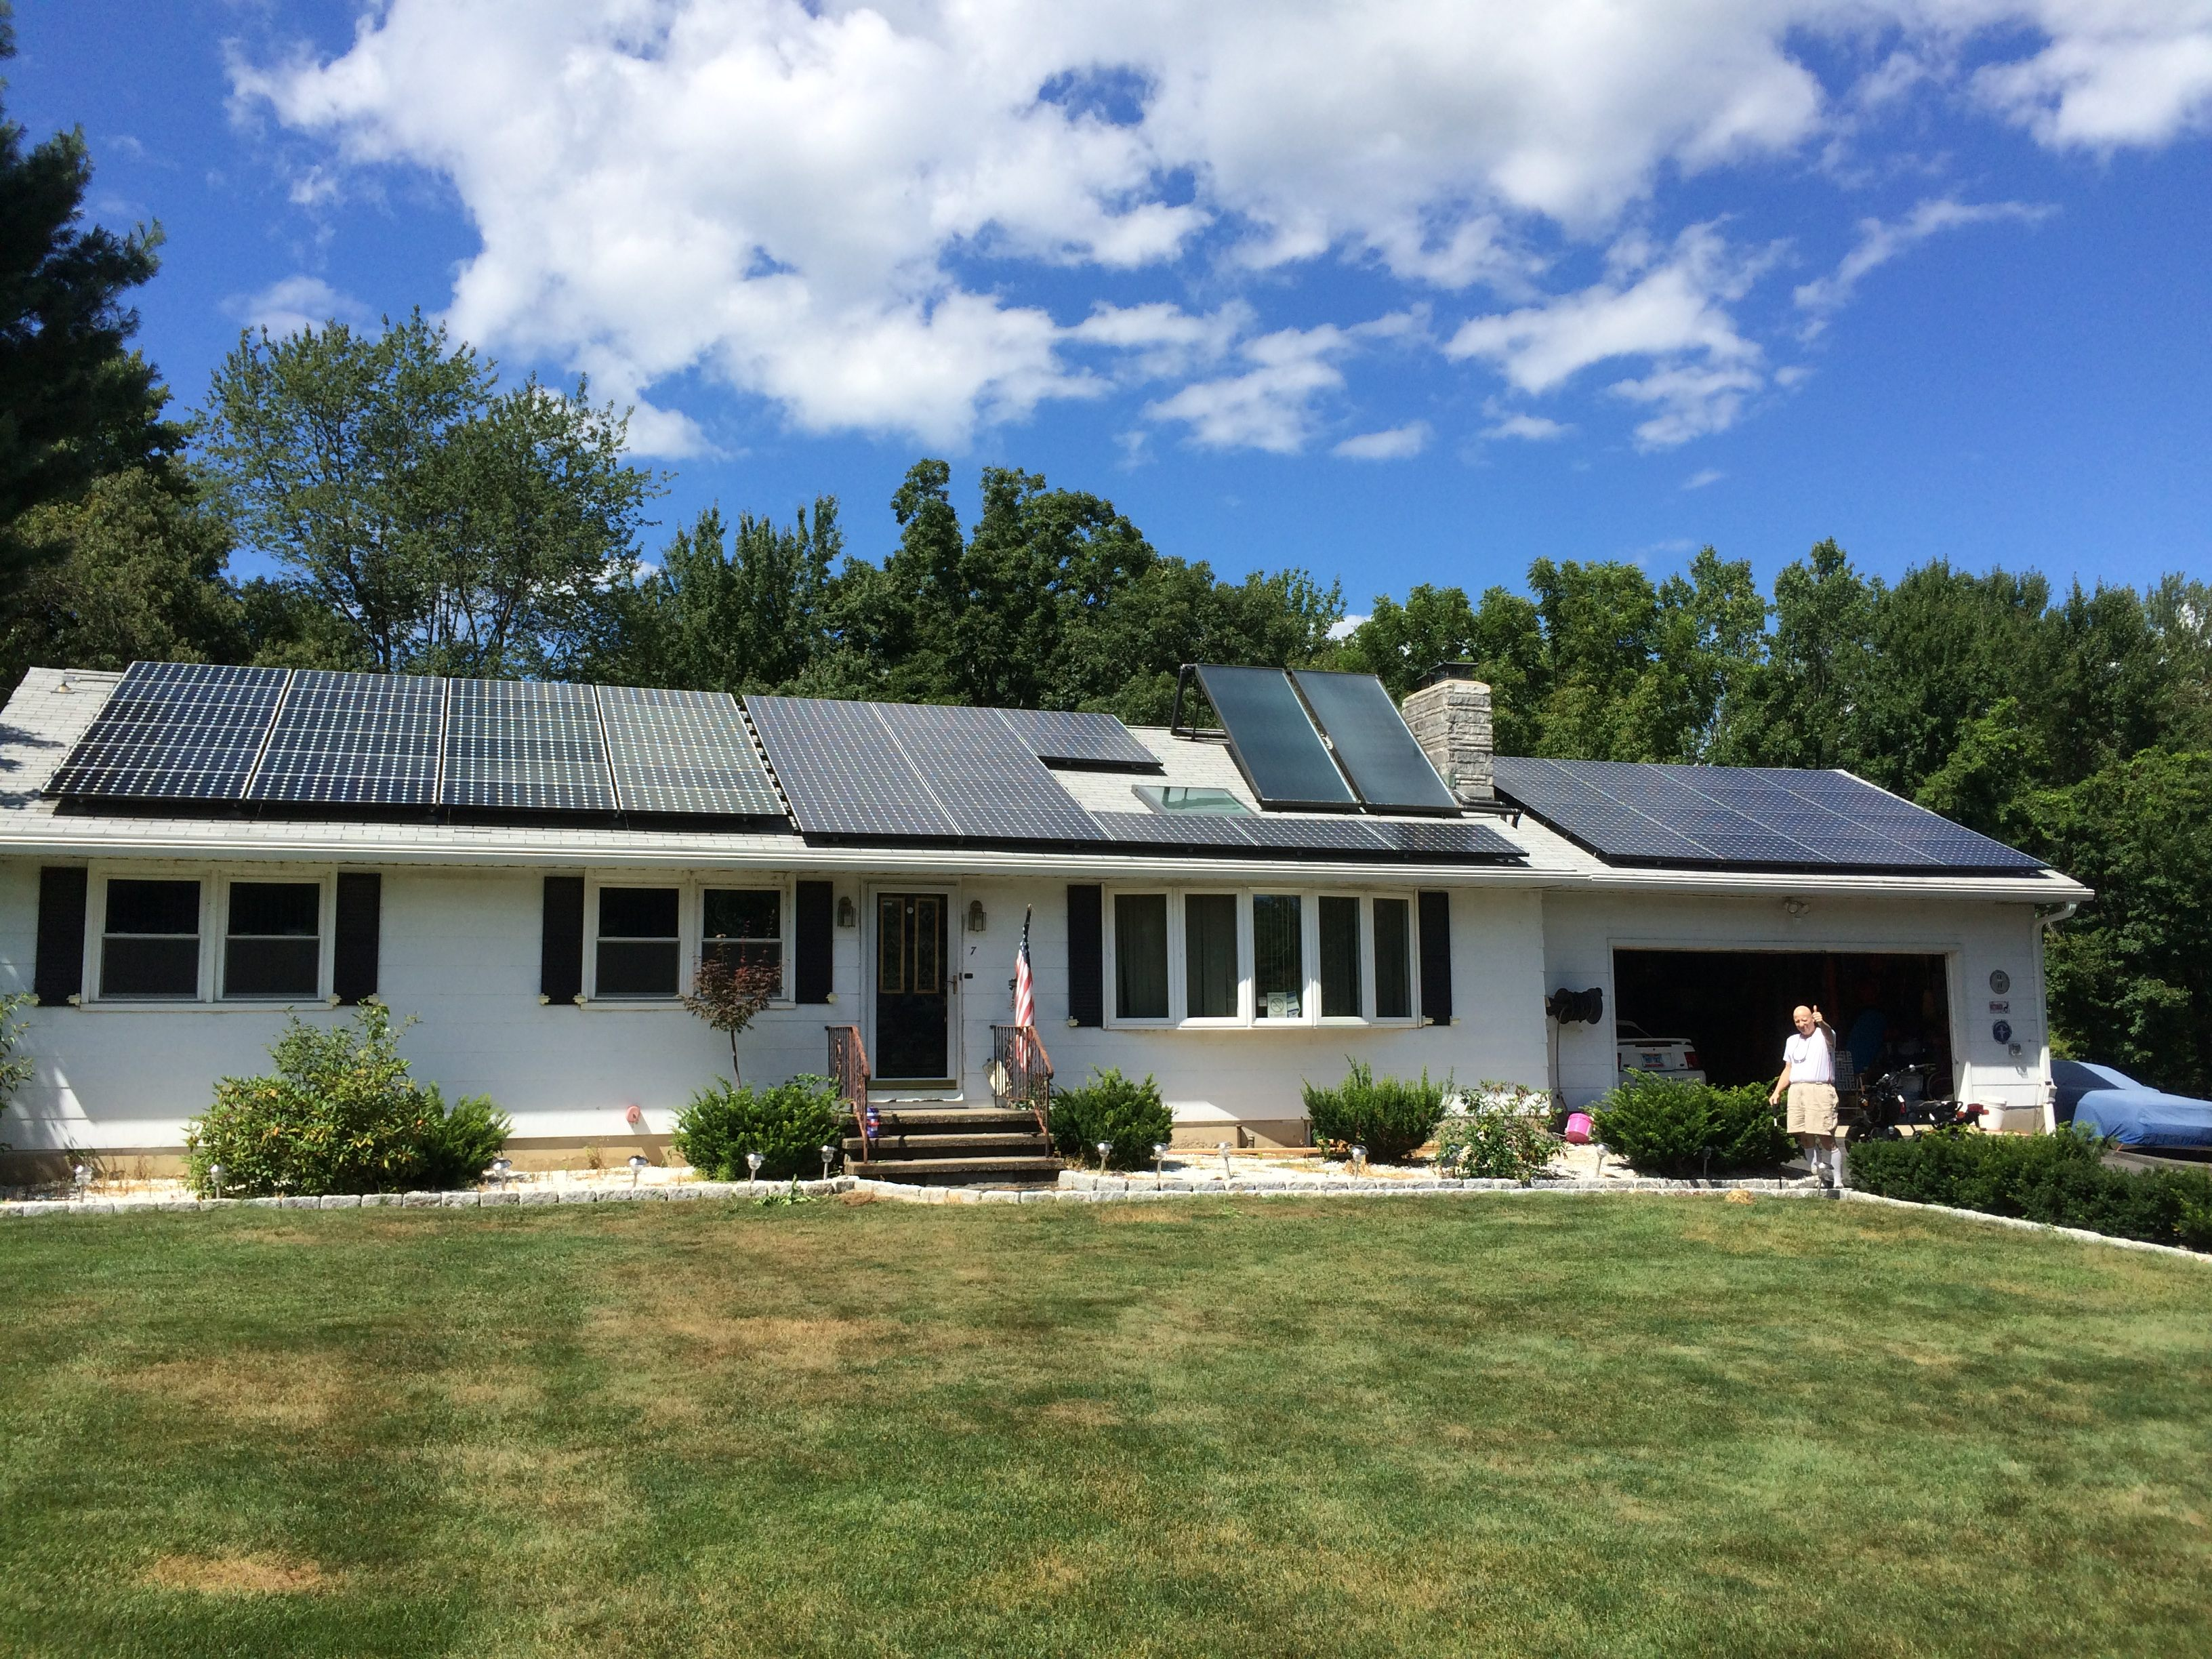 Solar panels on ranch style home in suburbs daytime